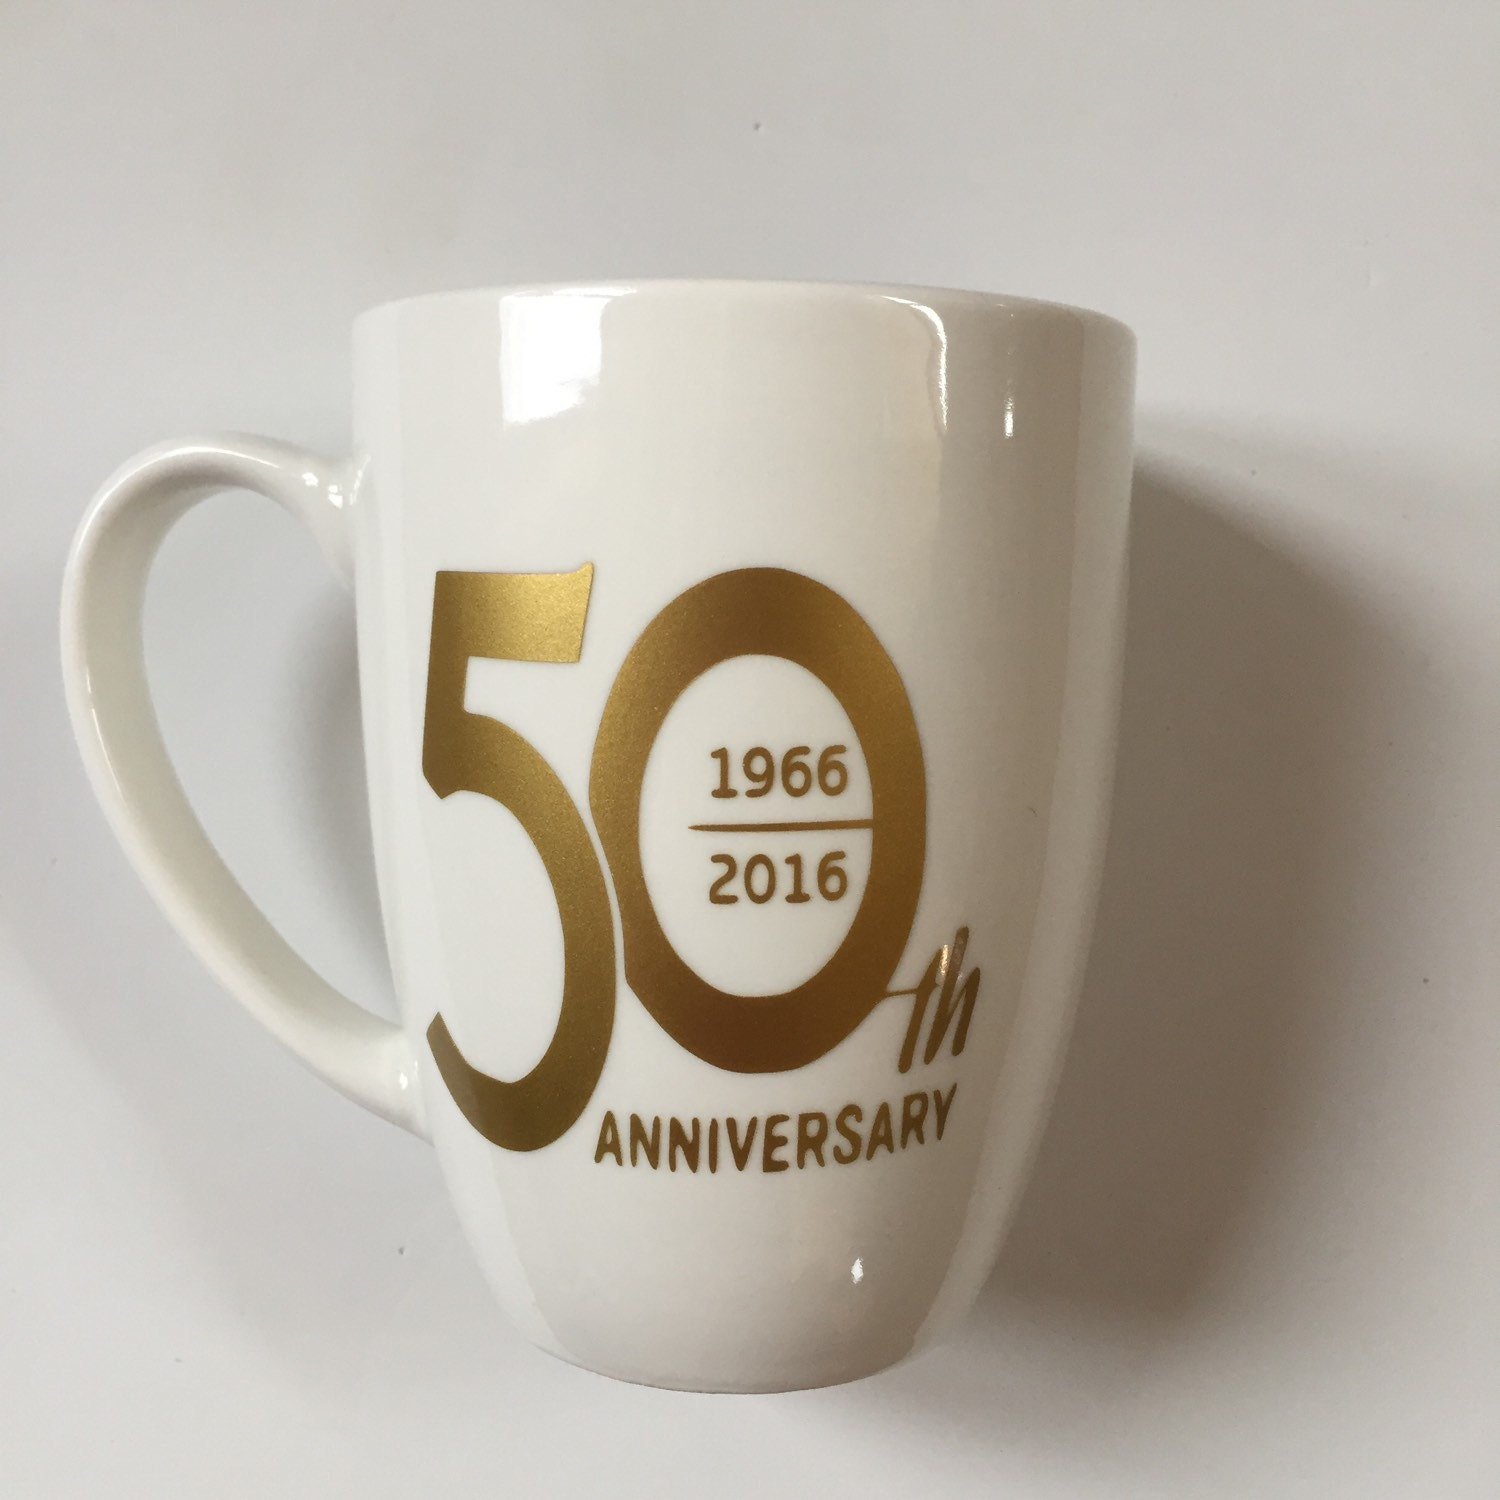 50th Wedding Anniversay Gifts: 50th Wedding Anniversary Gifts For Anniversary Special